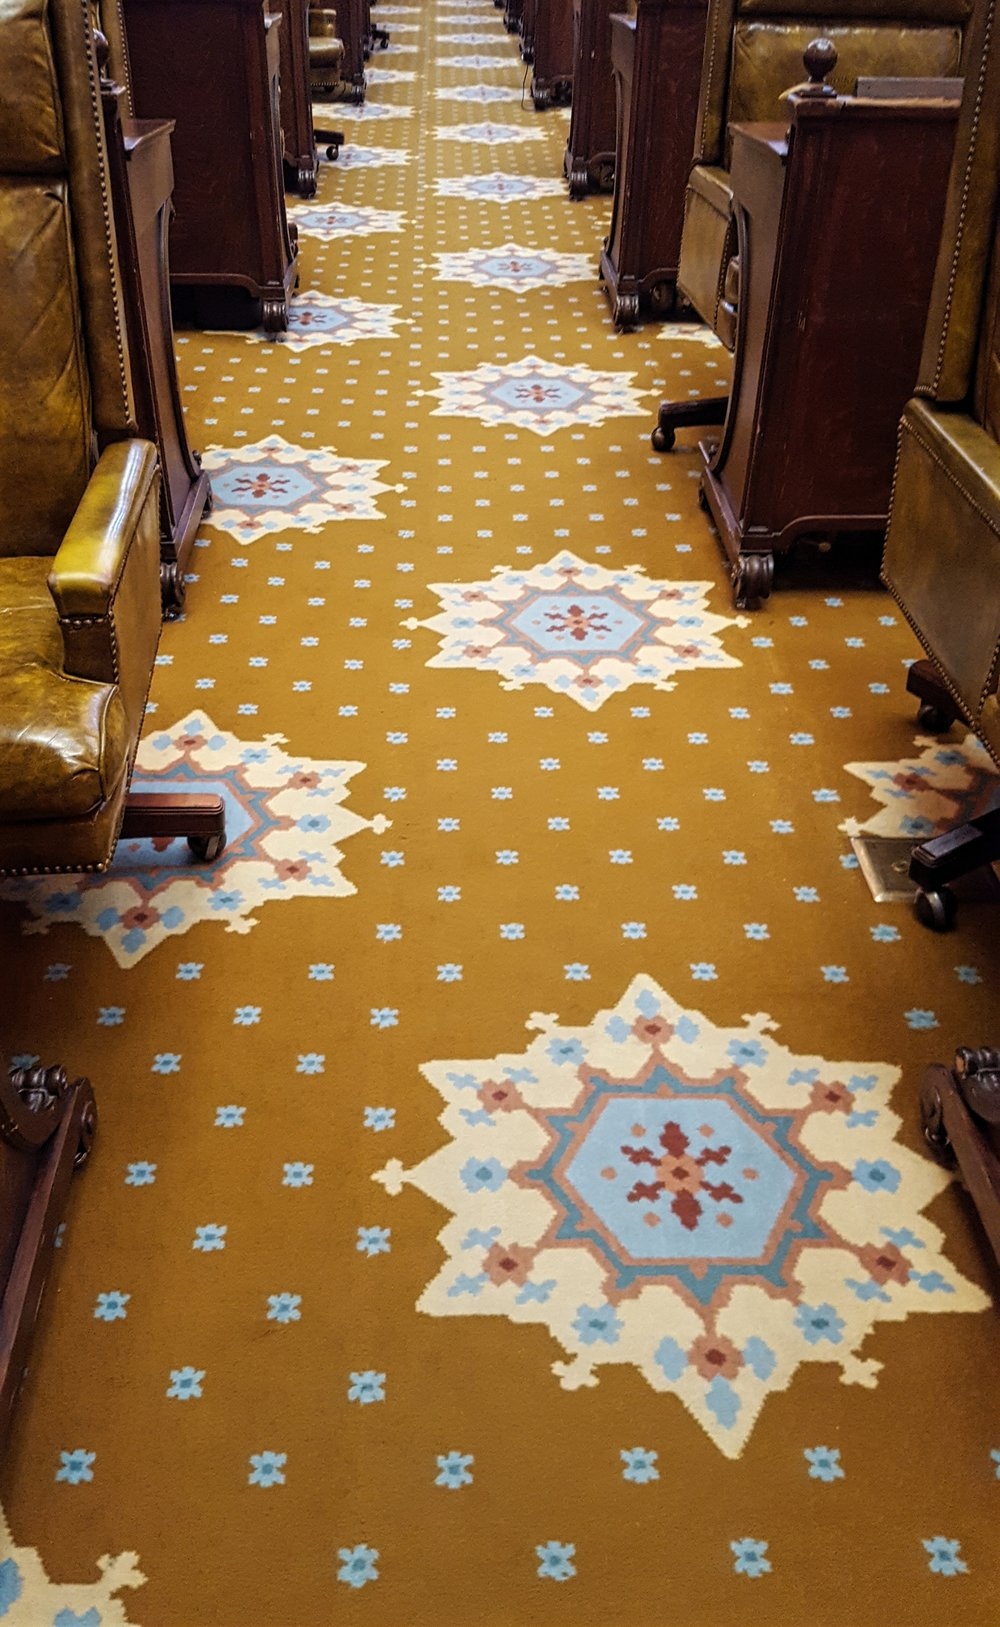 Carpet was installed to protect the tile floor; the carpet matches the tile pattern beneath